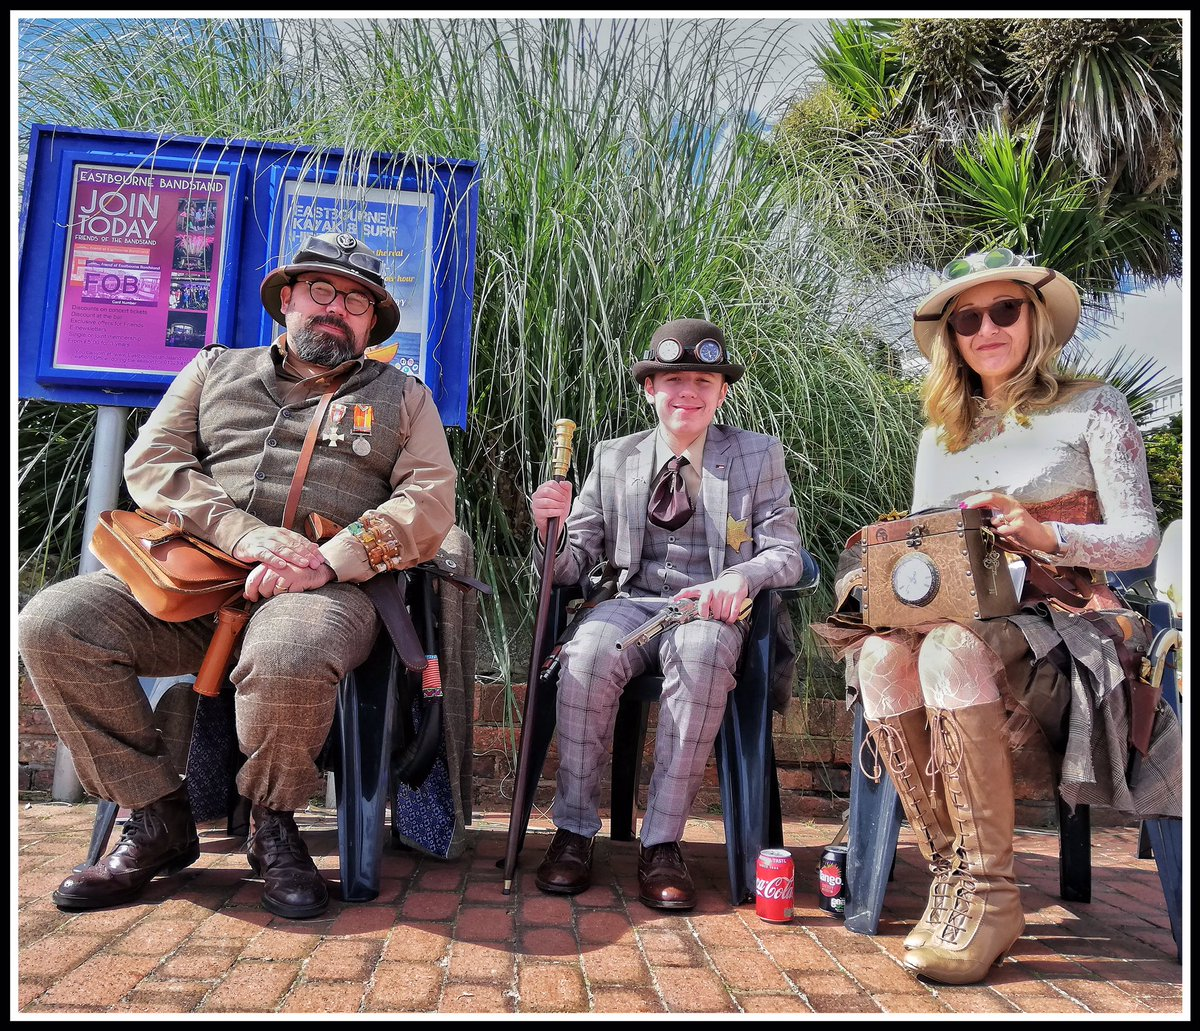 Join Today #SteamPowered #steampunk #Eastbourne #FamilyAffair #photography